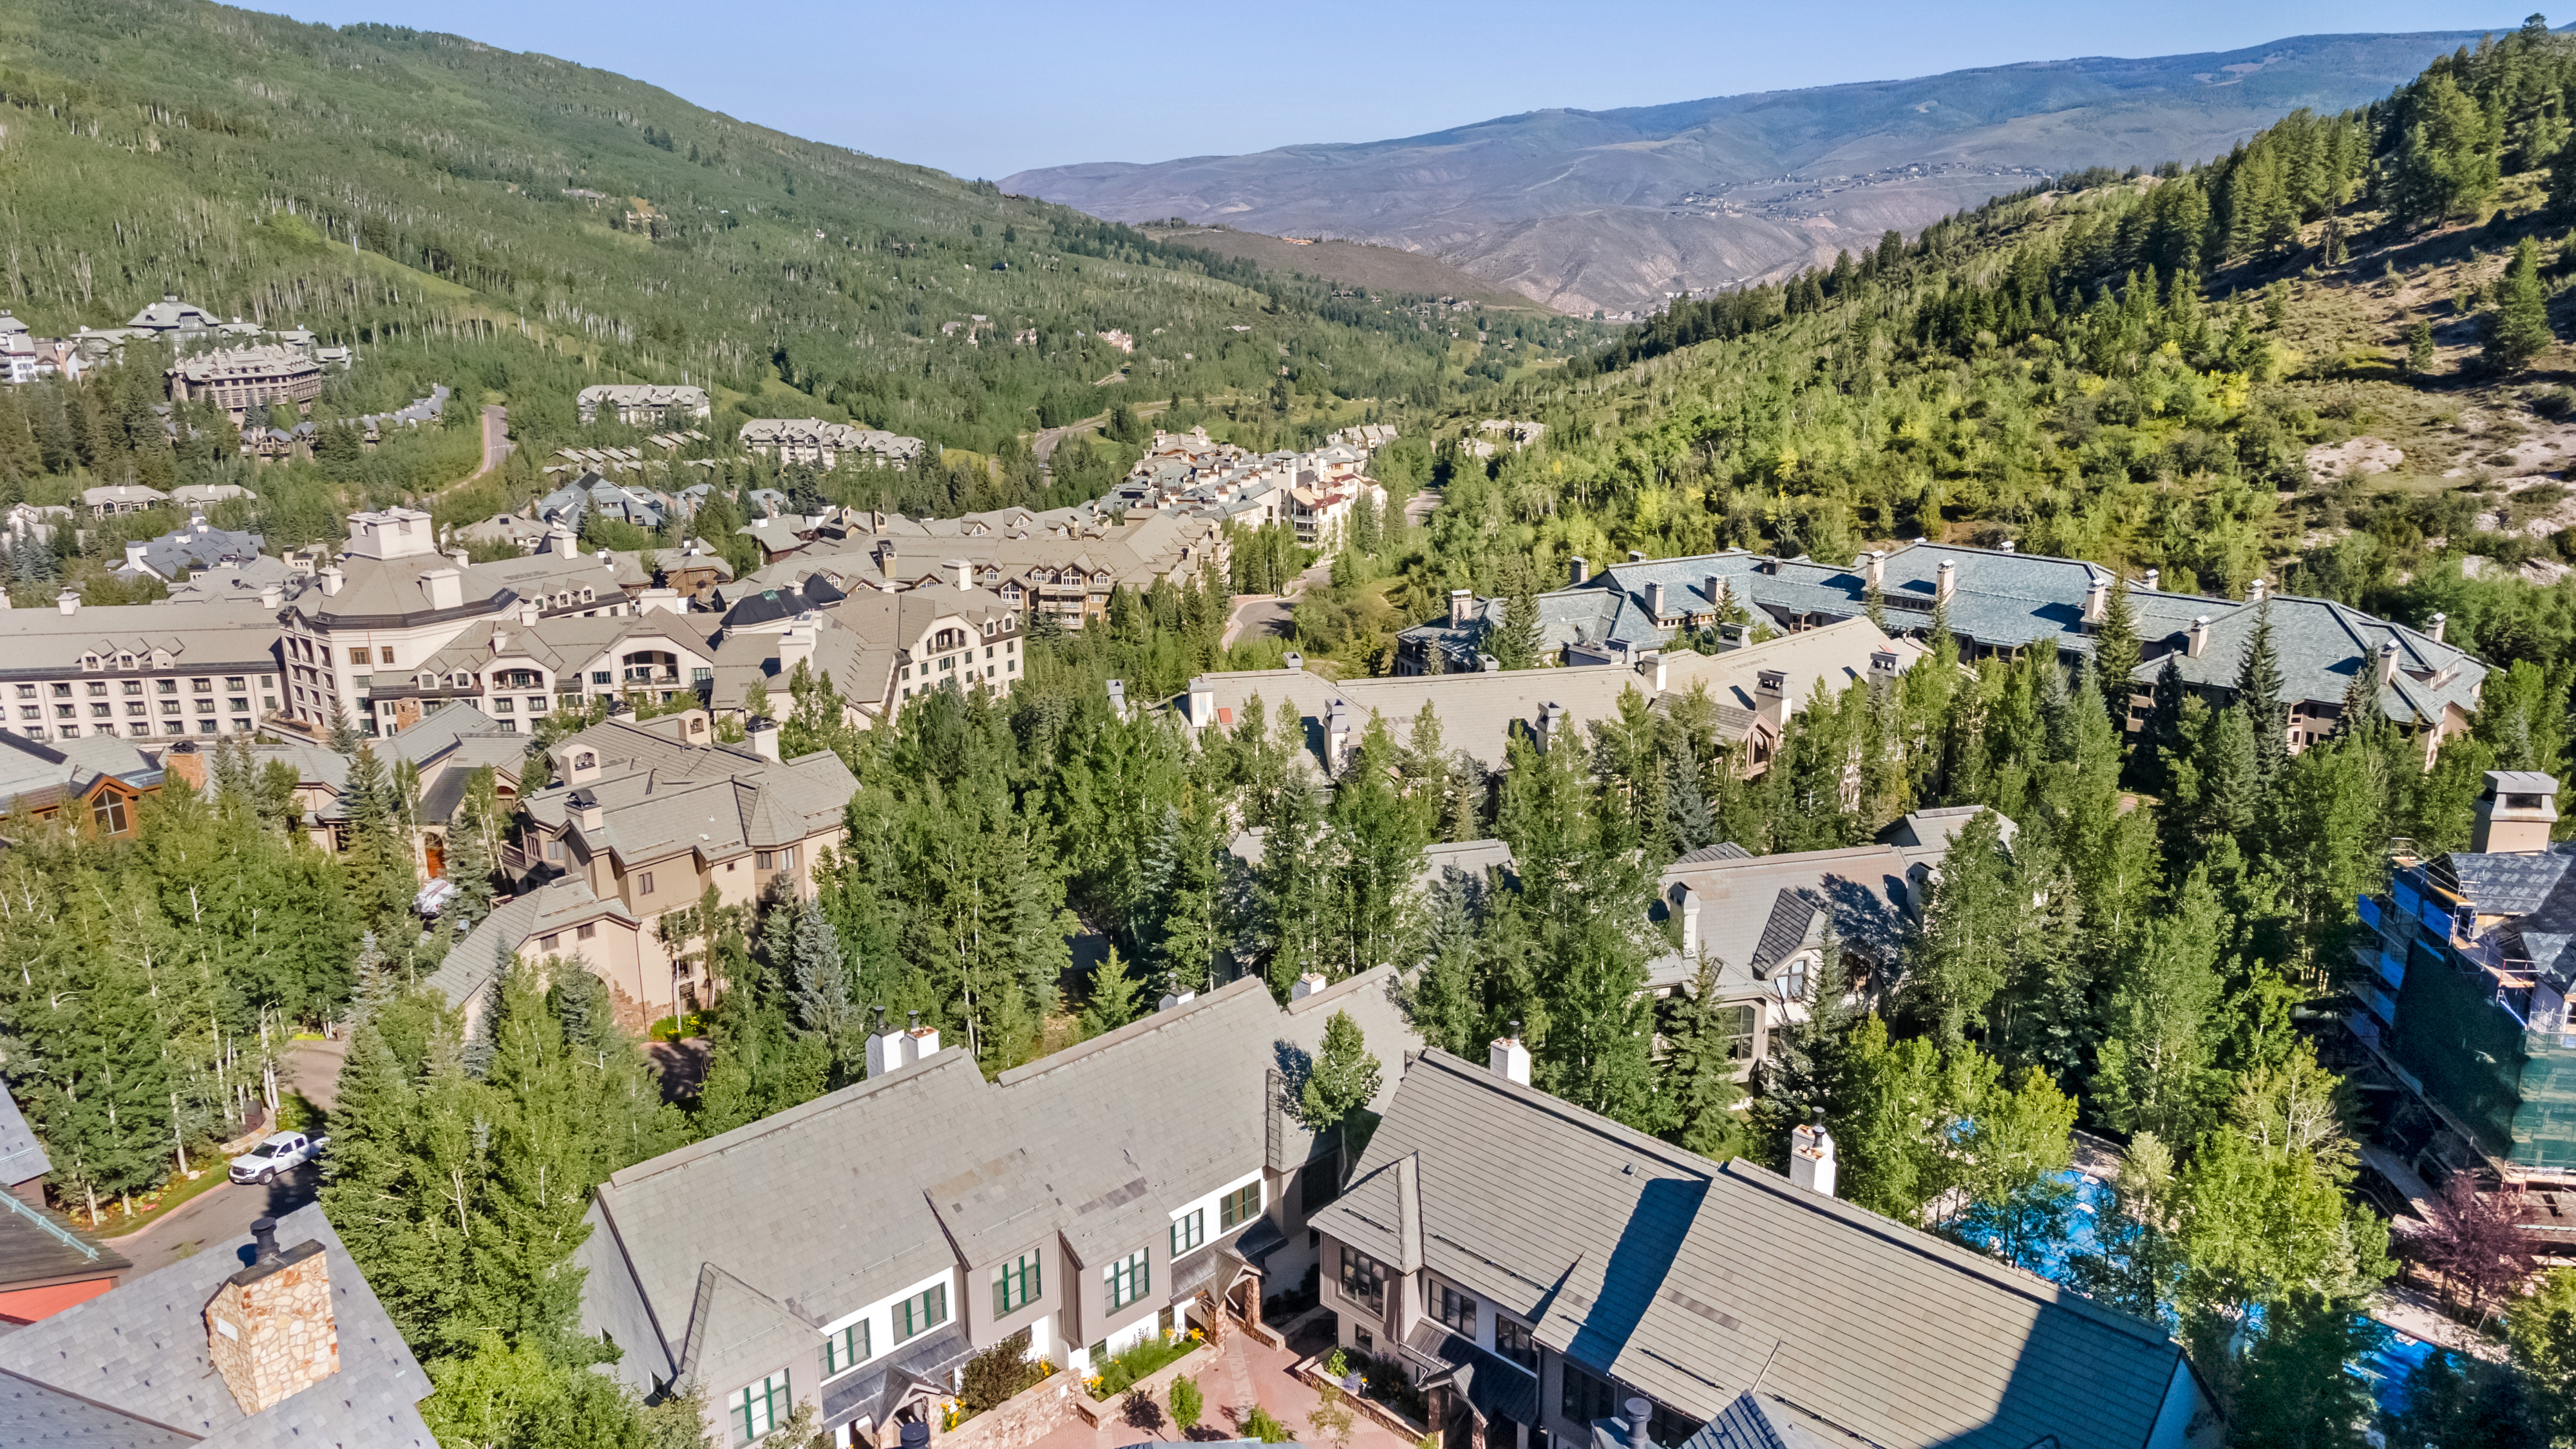 beaver creek aerial view of townhomes, mature trees and mountains